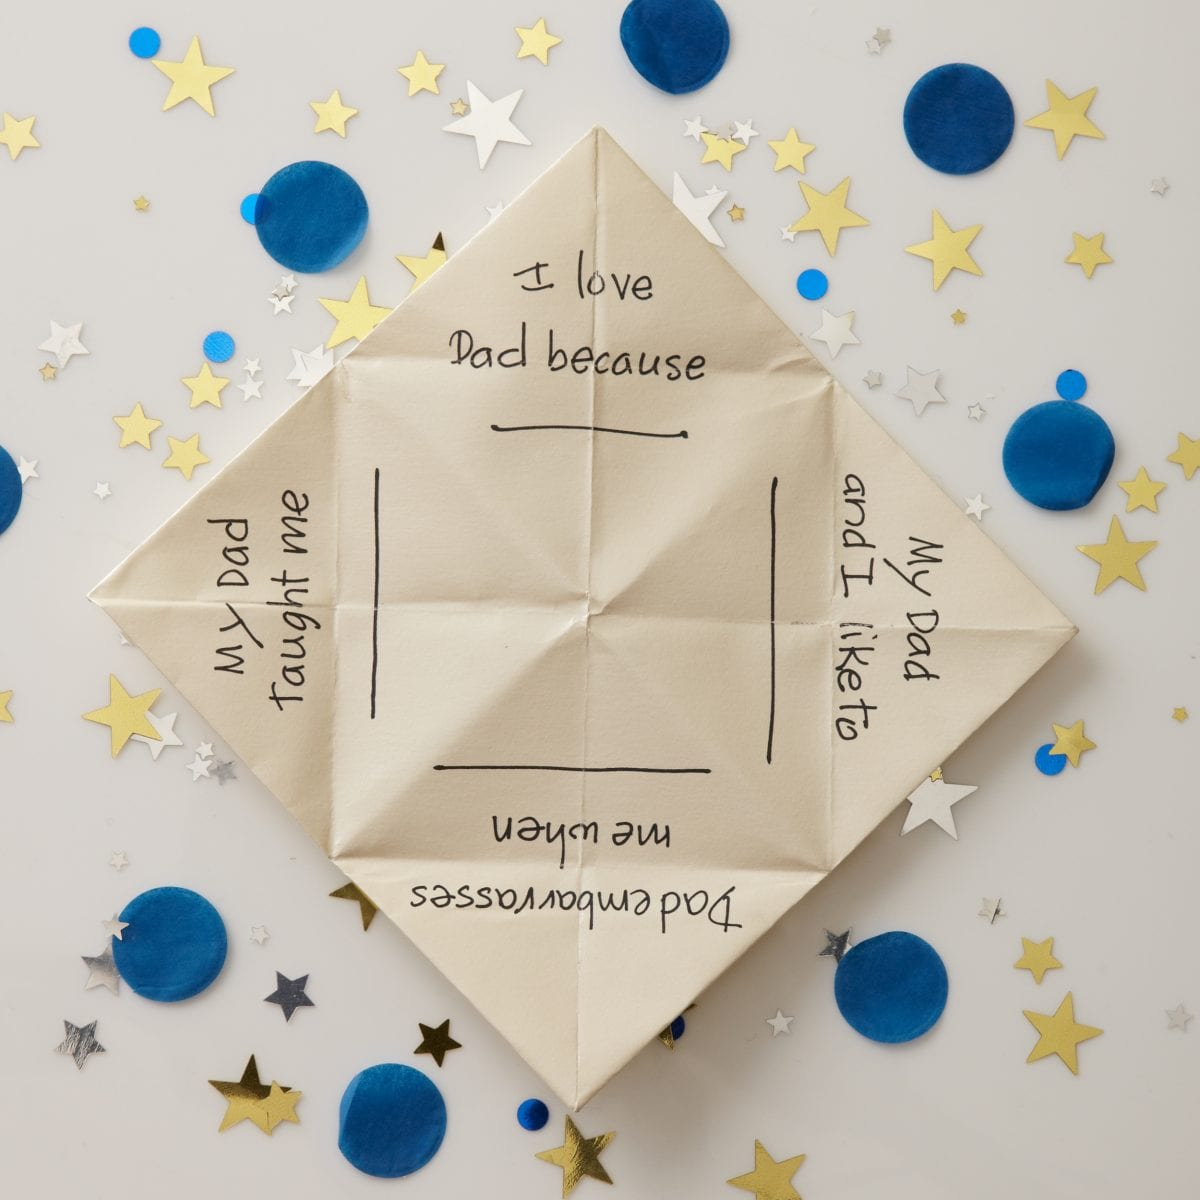 fathers-day-cootie-catcher-01